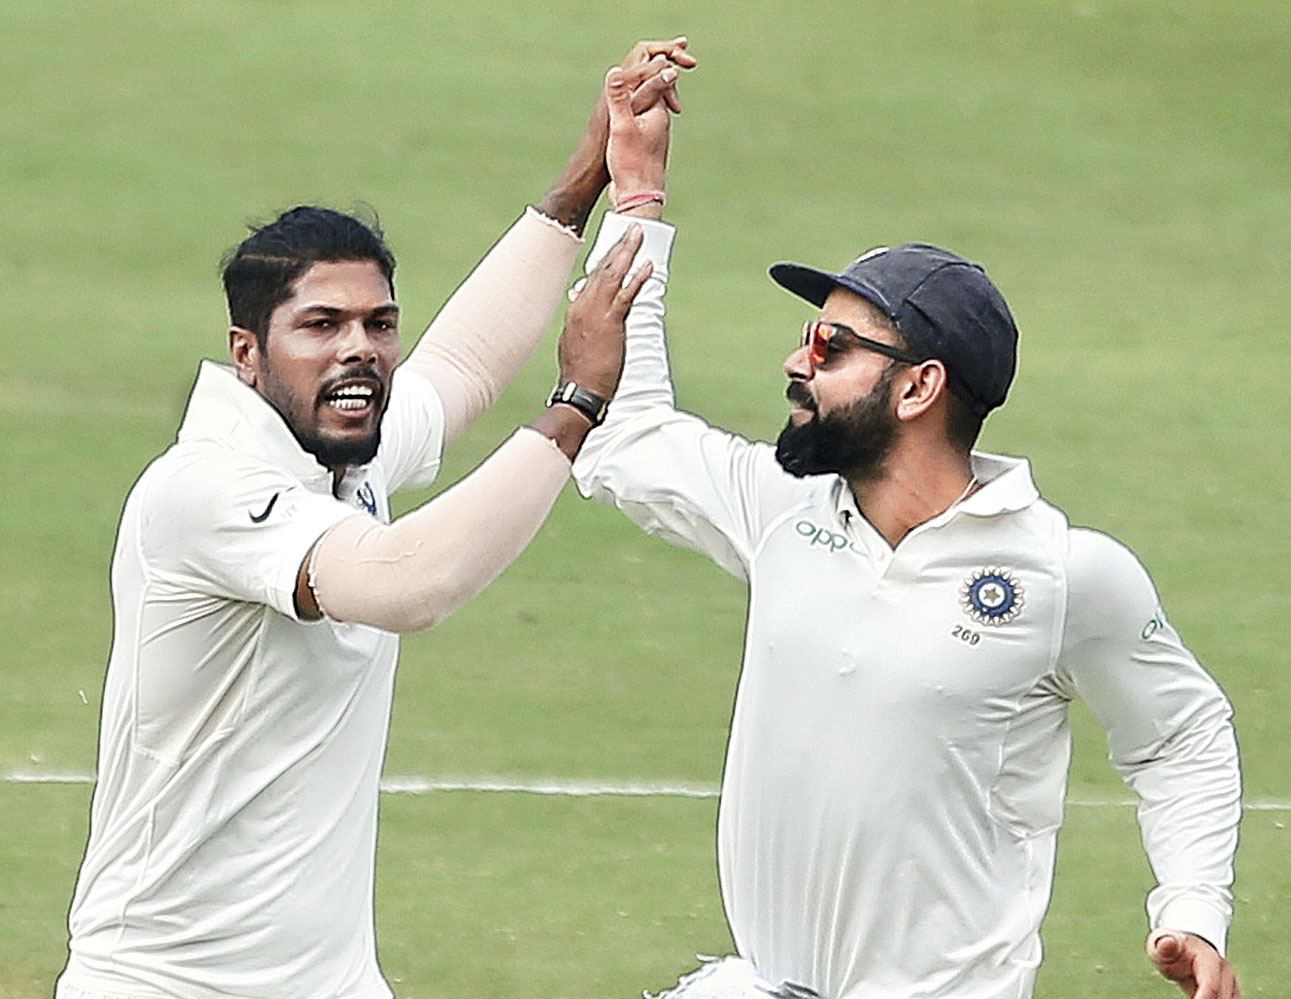 Umesh Yadav celebrates with Virat Kohli after dismissing Roston Chase in Hyderabad on Sunday.